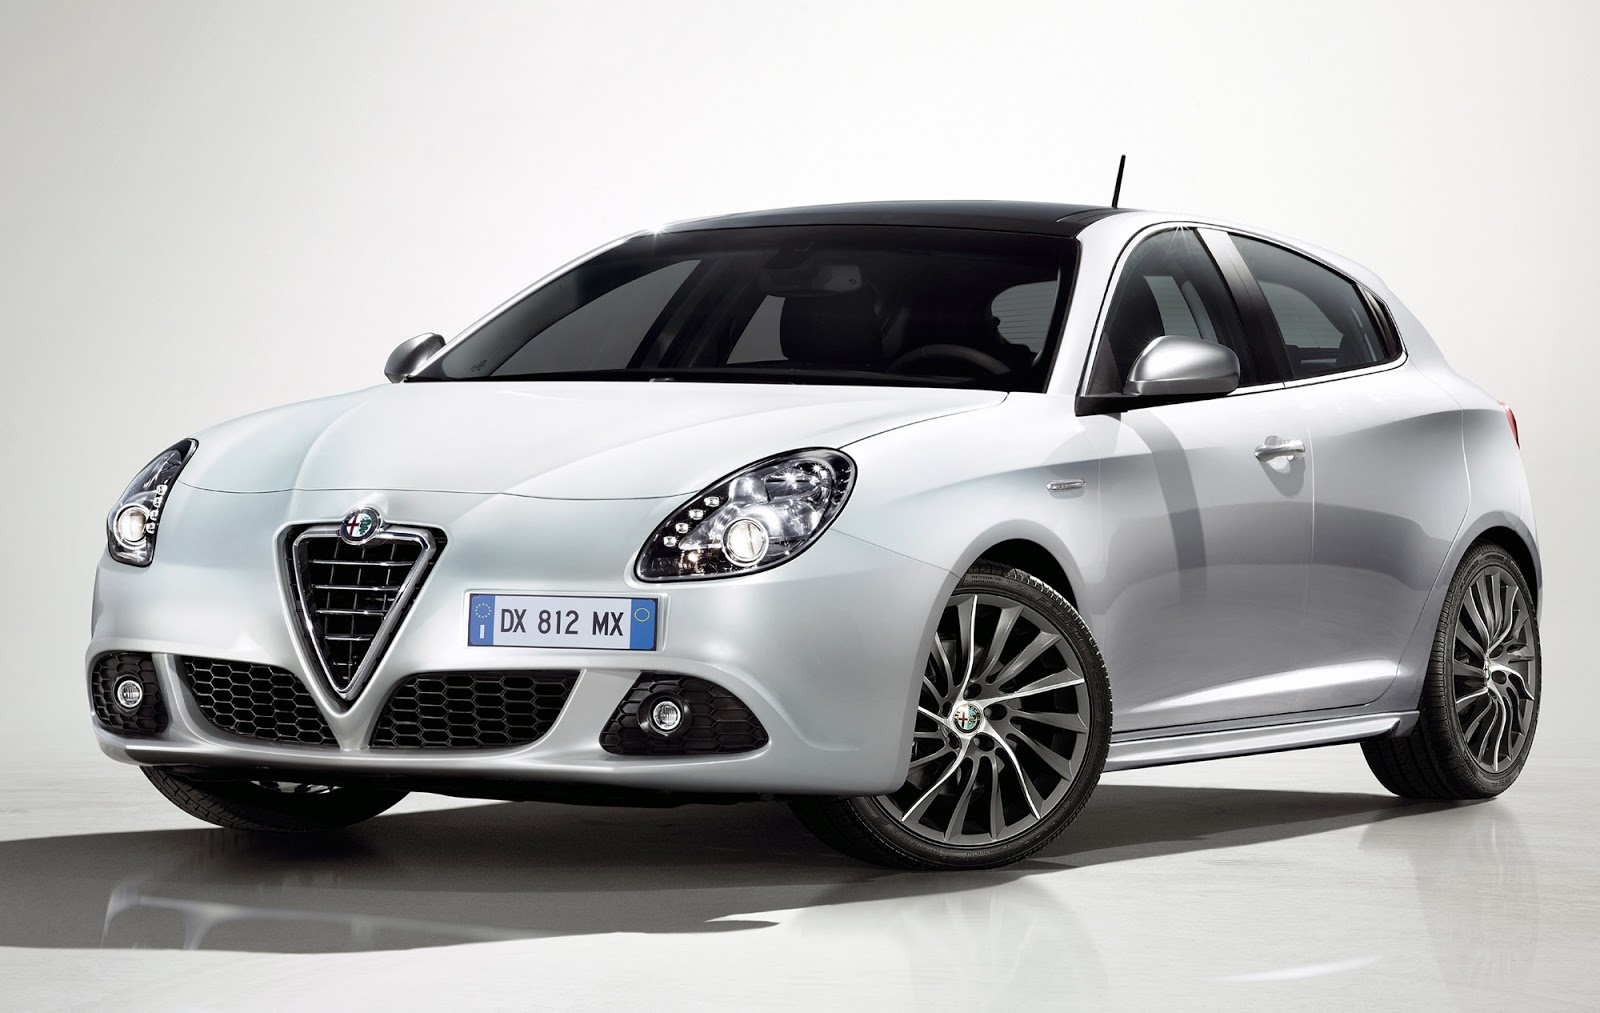 alfa romeo giulietta g430 - photo #35